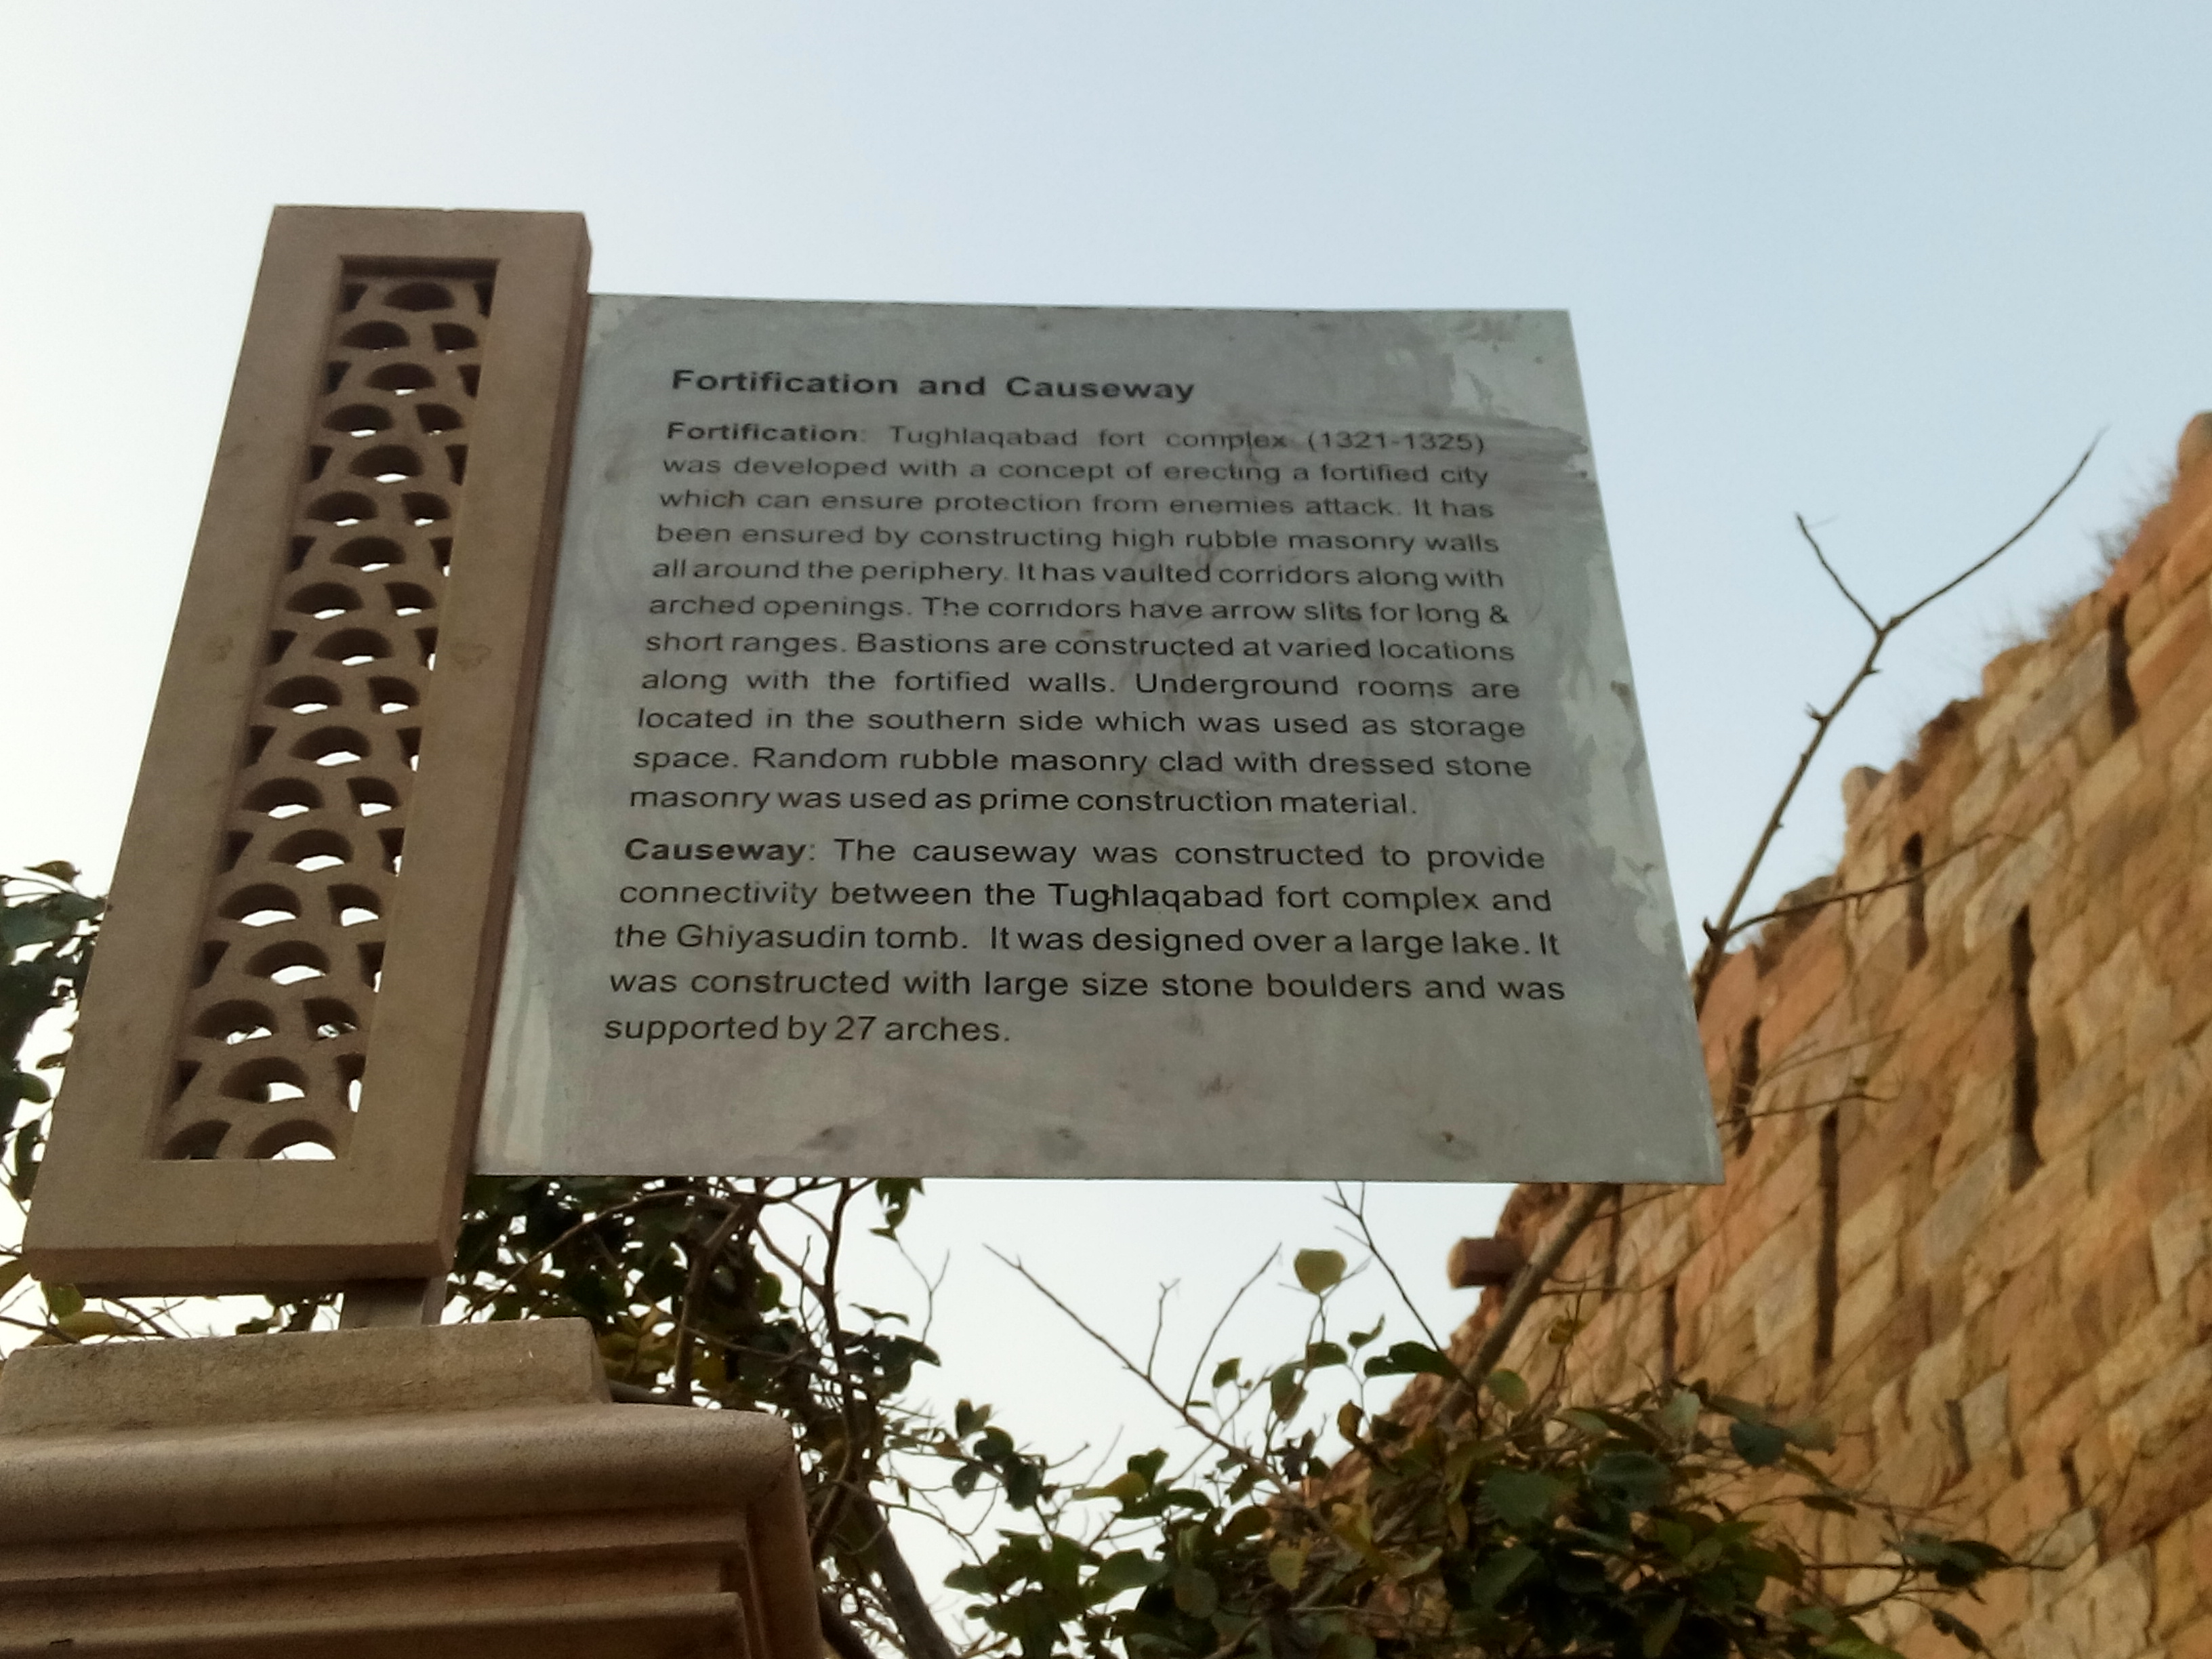 Board outside Tughlaqabad Fort